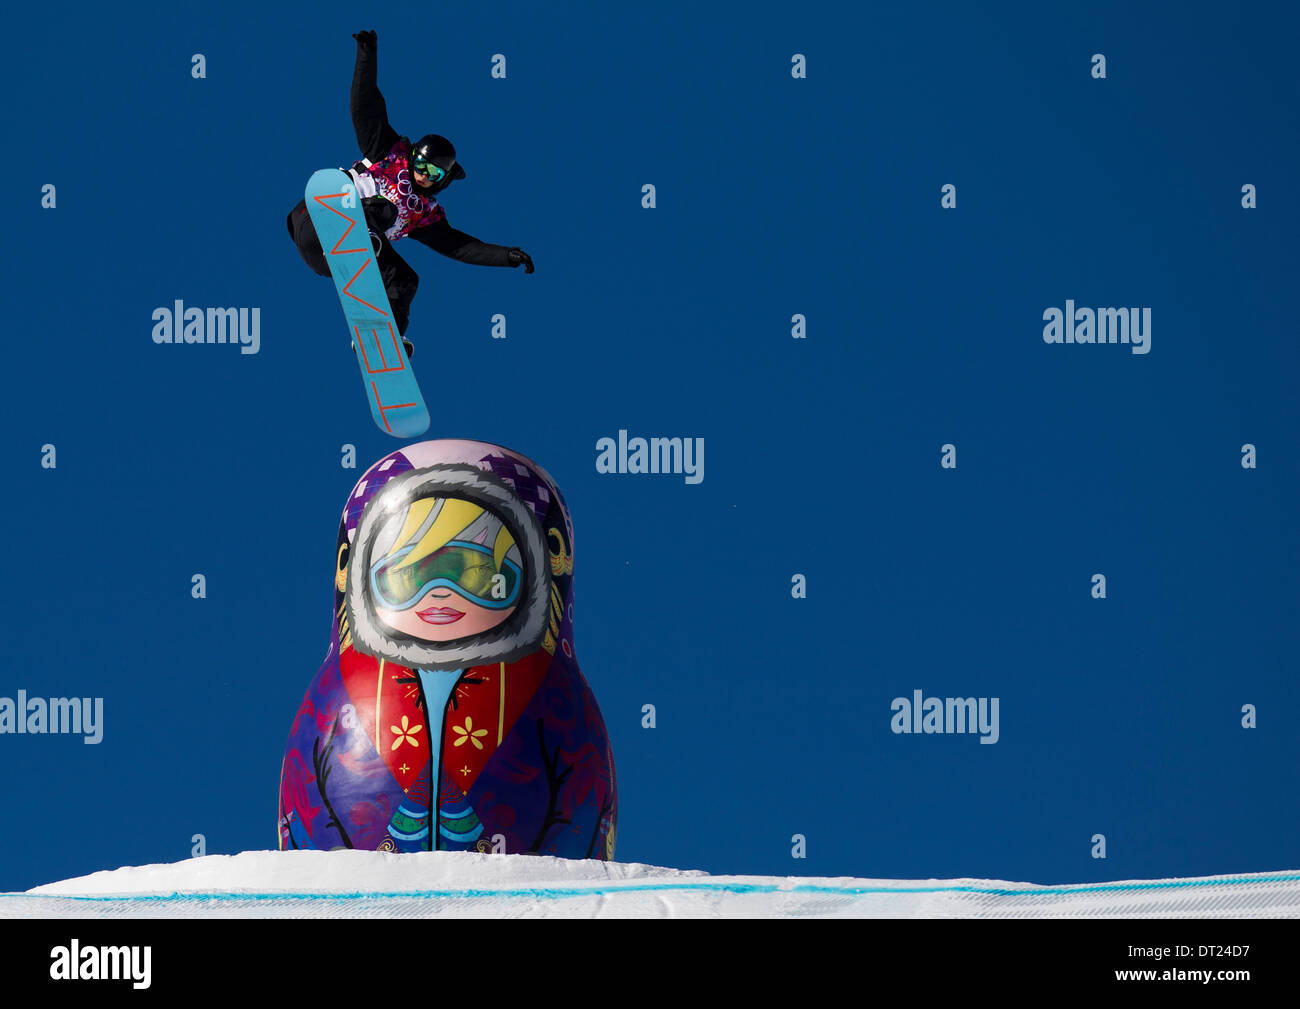 Sochi, Russia. 6th Feb, 2014. JAN SCHERRER of Switzerland comes off a rail and airs over an inflated matryoshka doll on the slopestyle course during Mens Slopestyle qualifying heats at Rosa Khutor Extreme Park. Credit:  U-T San Diego/ZUMAPRESS.com/Alamy Live News - Stock Image